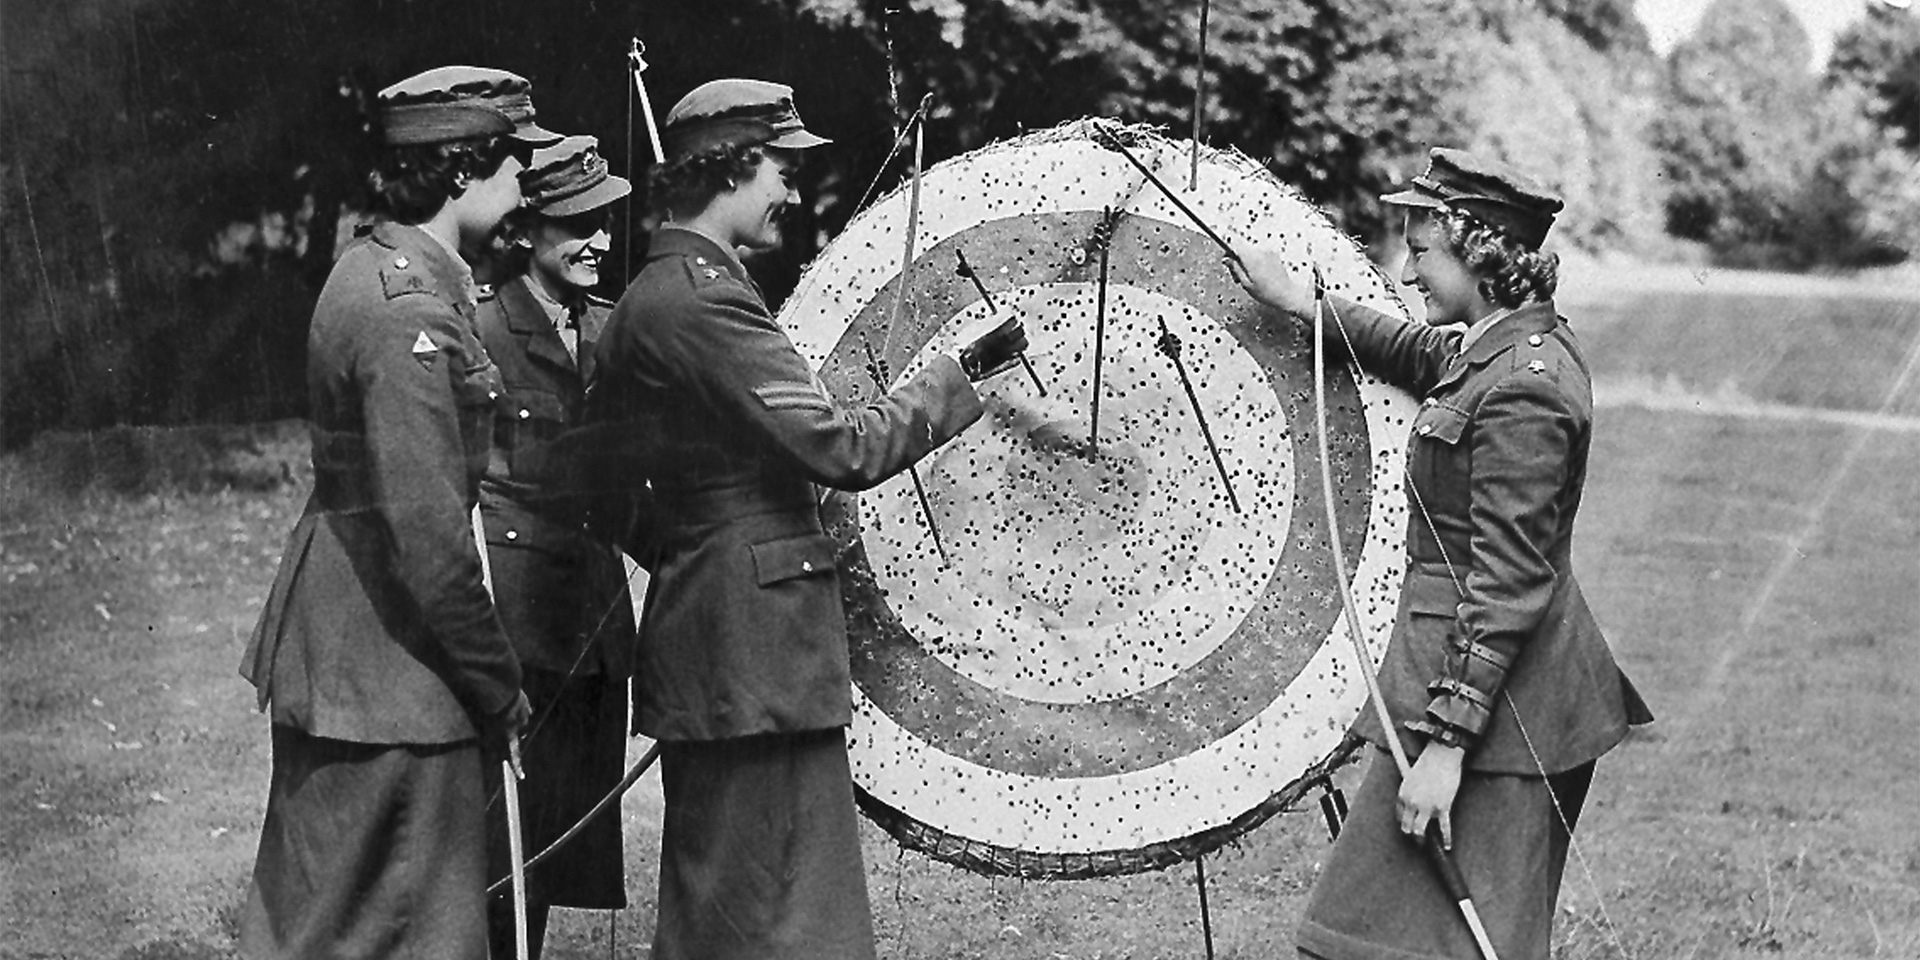 Auxiliary Territorial Service archery, c1940